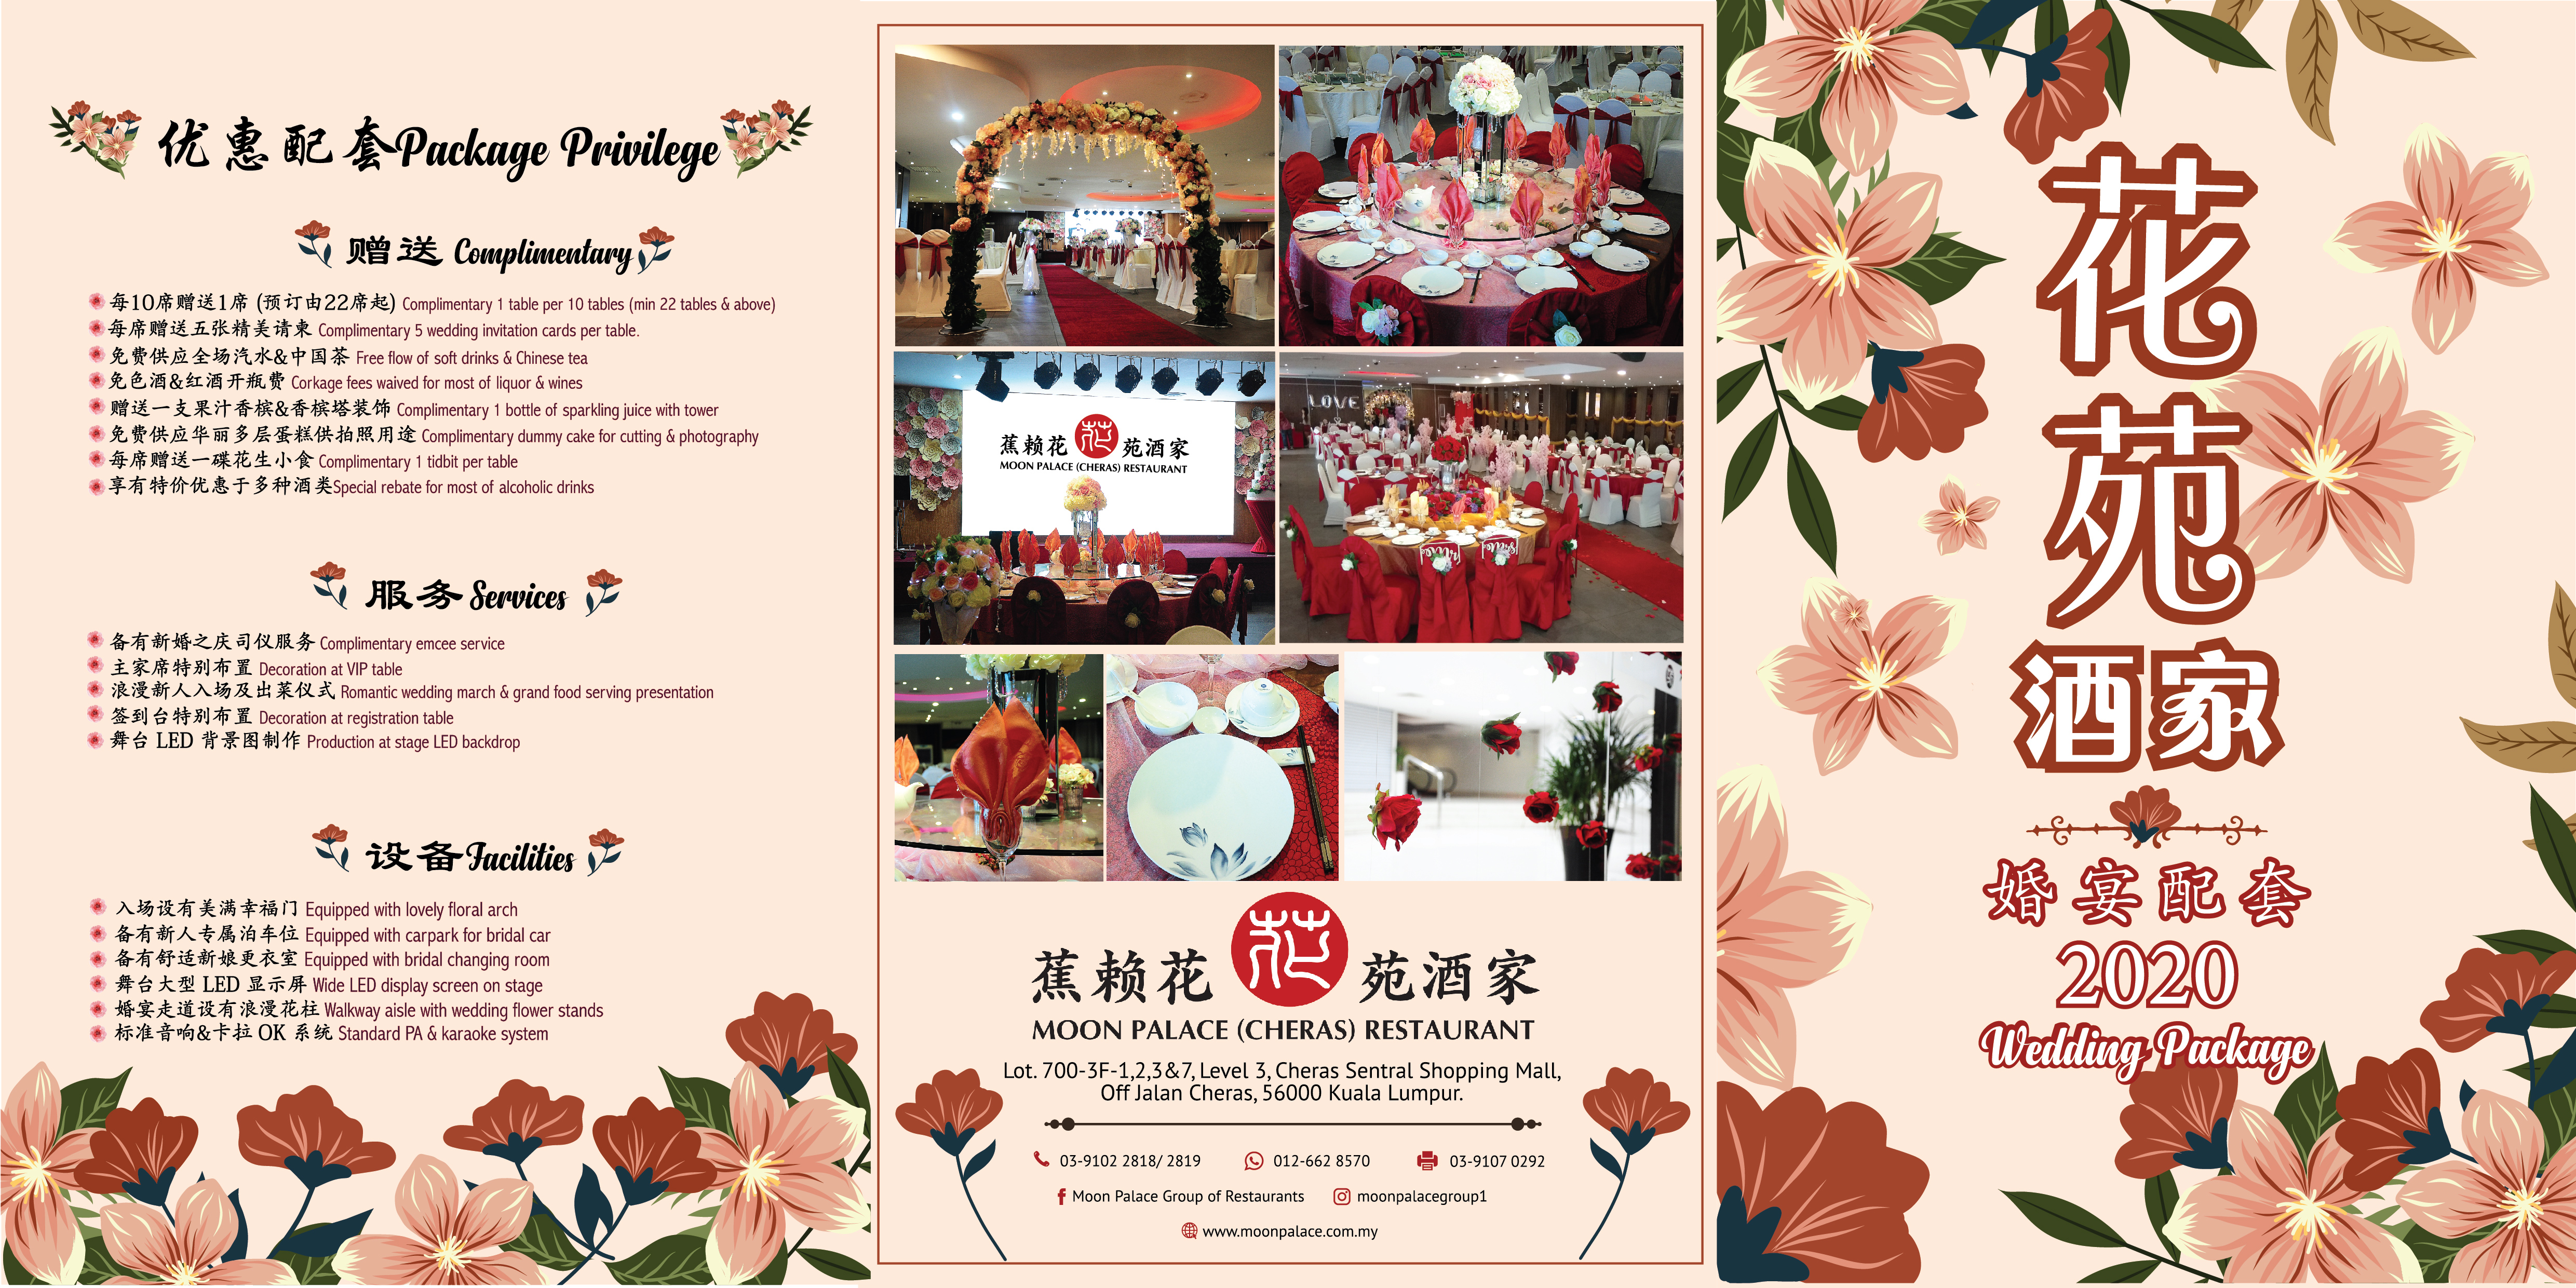 花苑婚宴配套2020 蕉赖花苑酒家 Wedding Package 2020 Moon Palace Cheras Restaurant